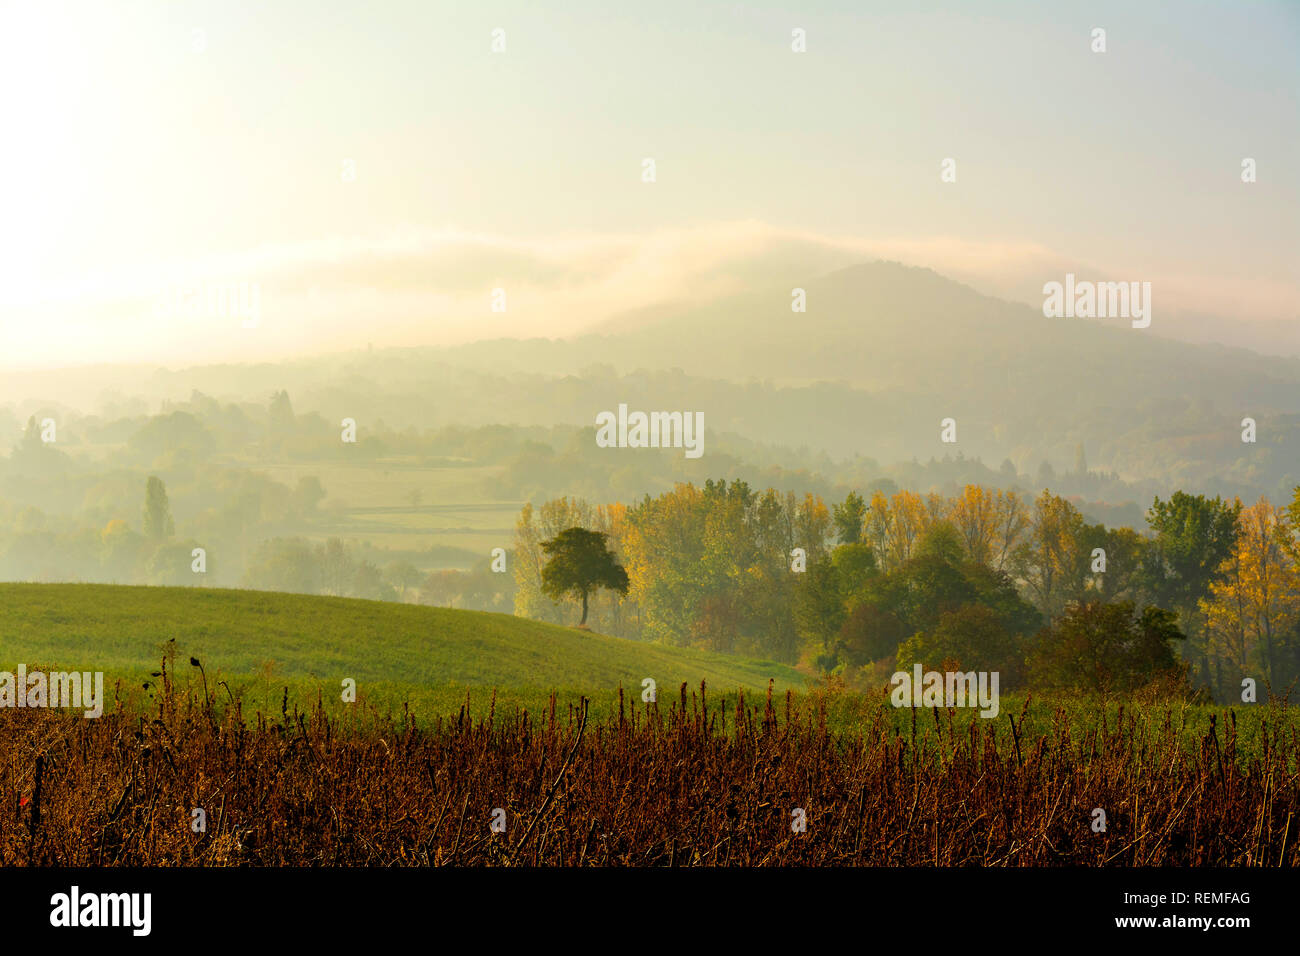 Isolated tree in the mist, Puy de Dome department, Auvergne Rhone Alpes, France, Europe Stock Photo